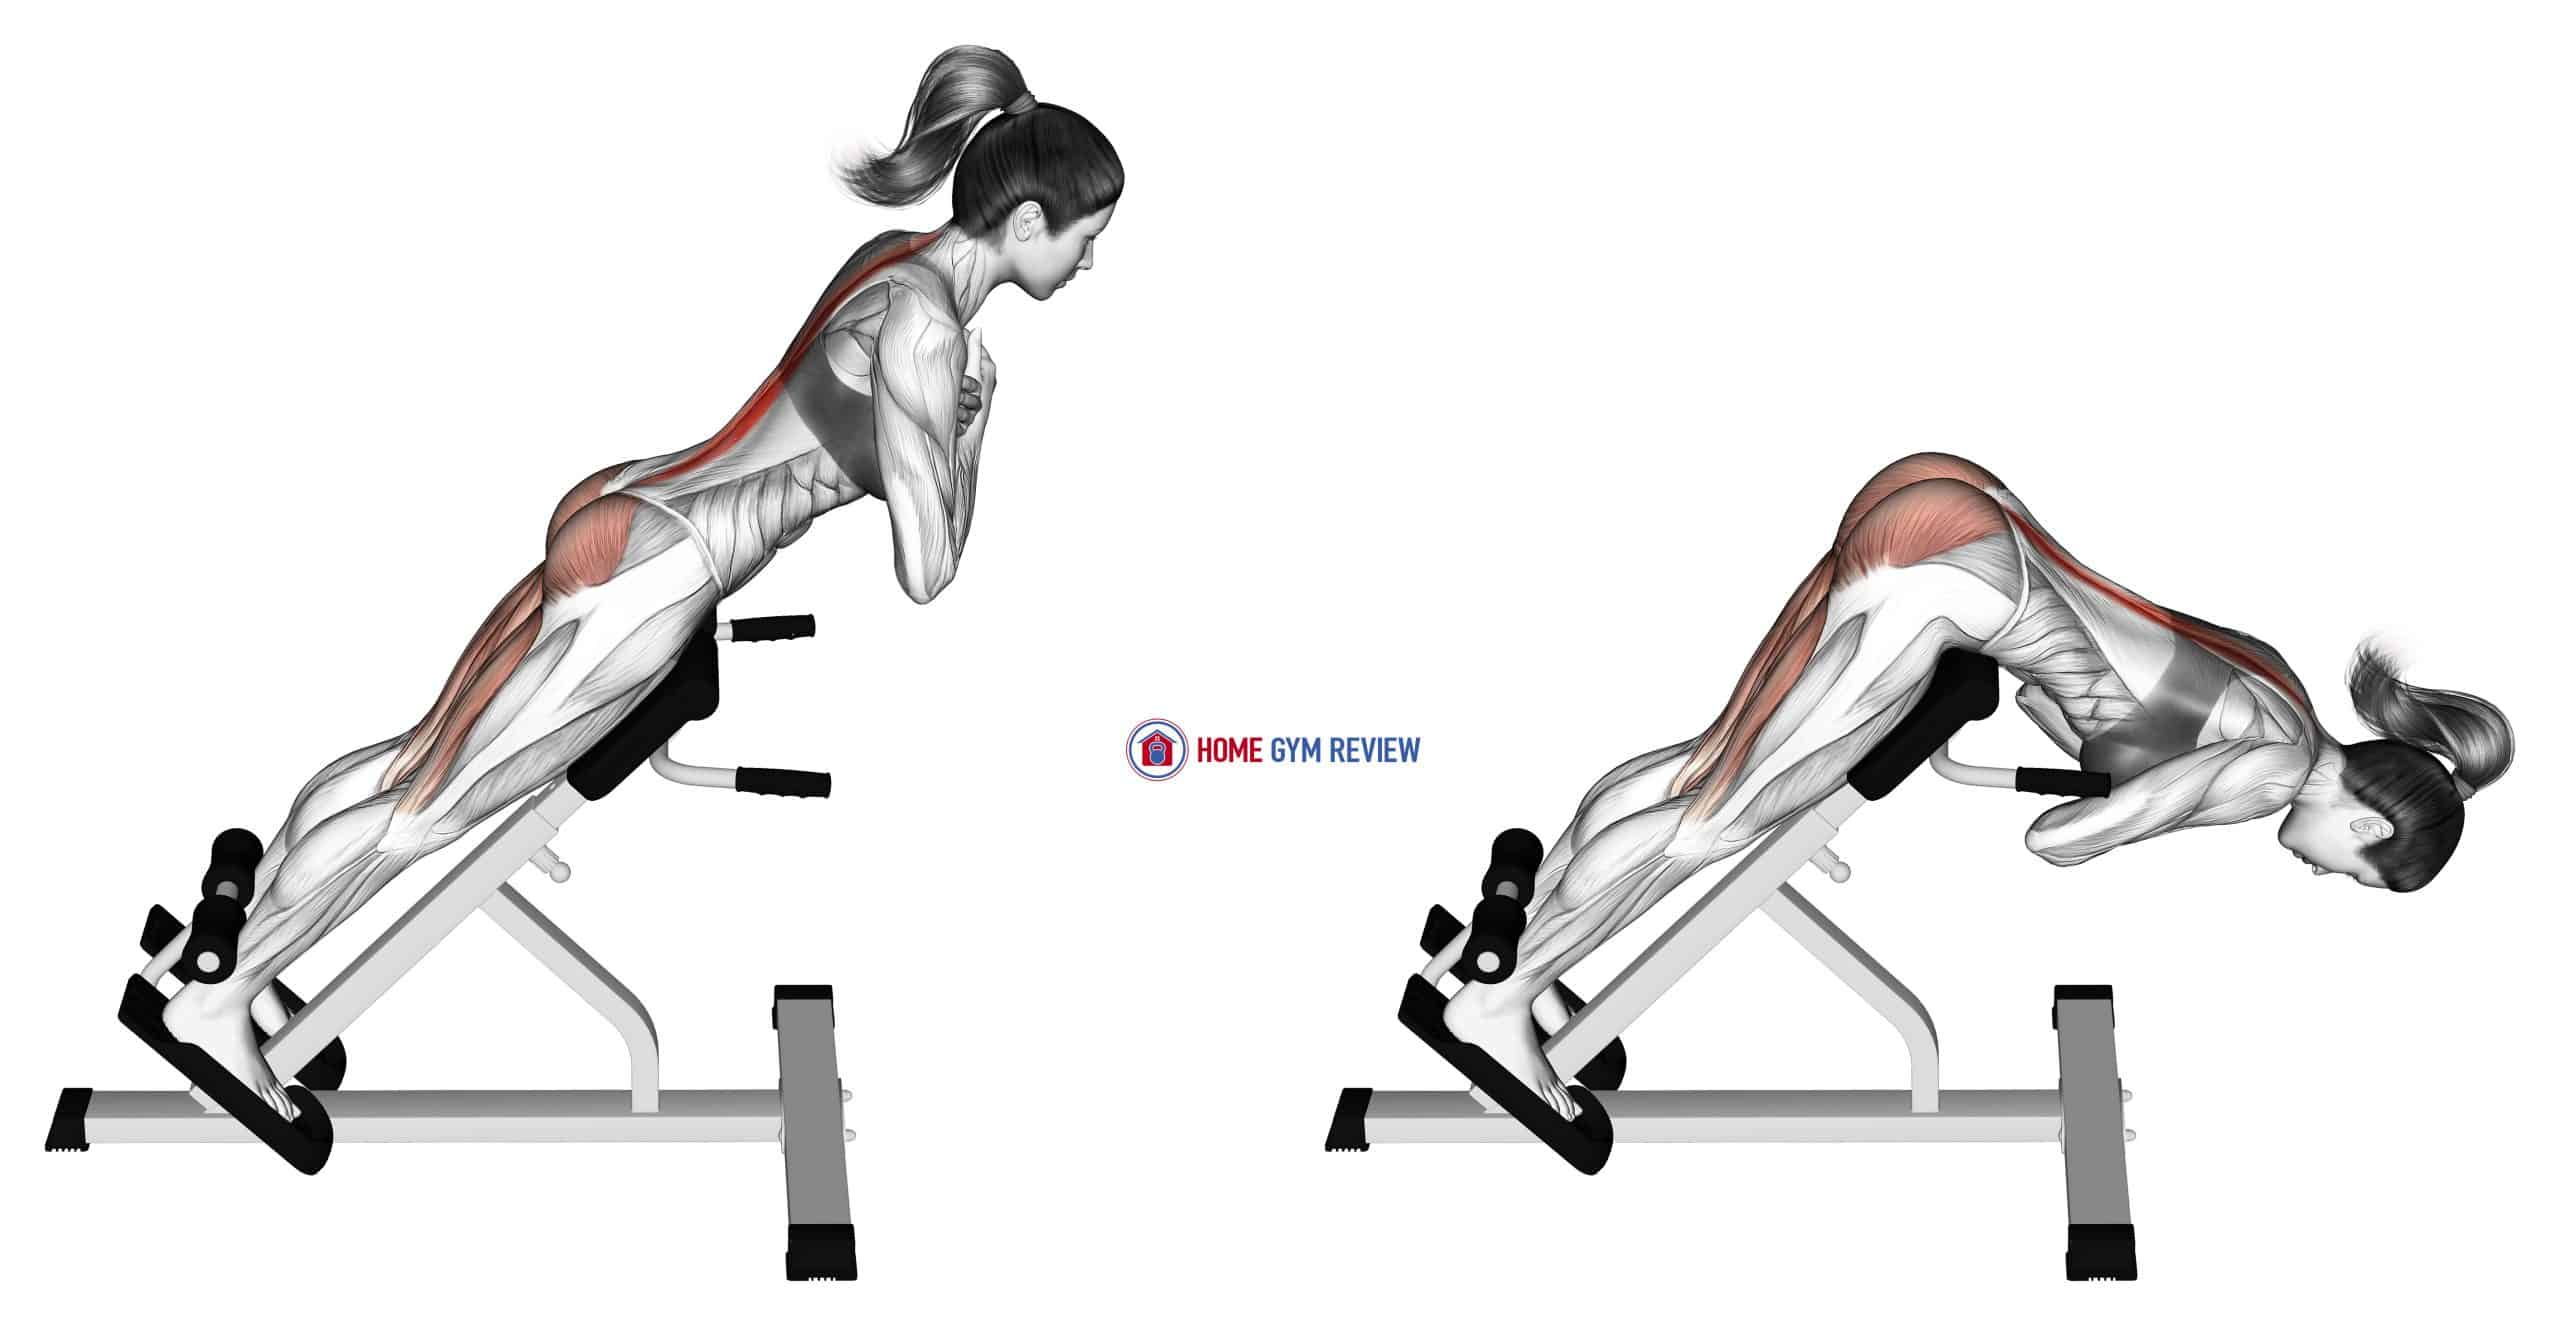 45 degree hyperextension (arms in front of chest)